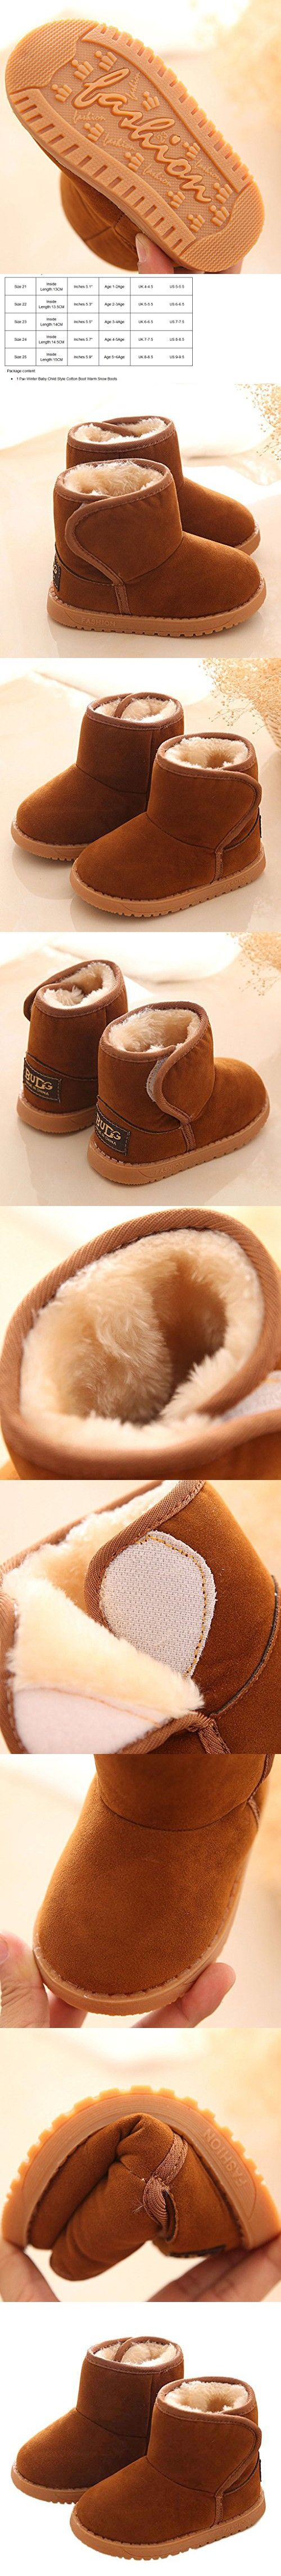 Usstore 1 Pair Baby Infant Toddler Newborn Prewalker Cotton Shoes Snow Boots (1-2Age, Brown)